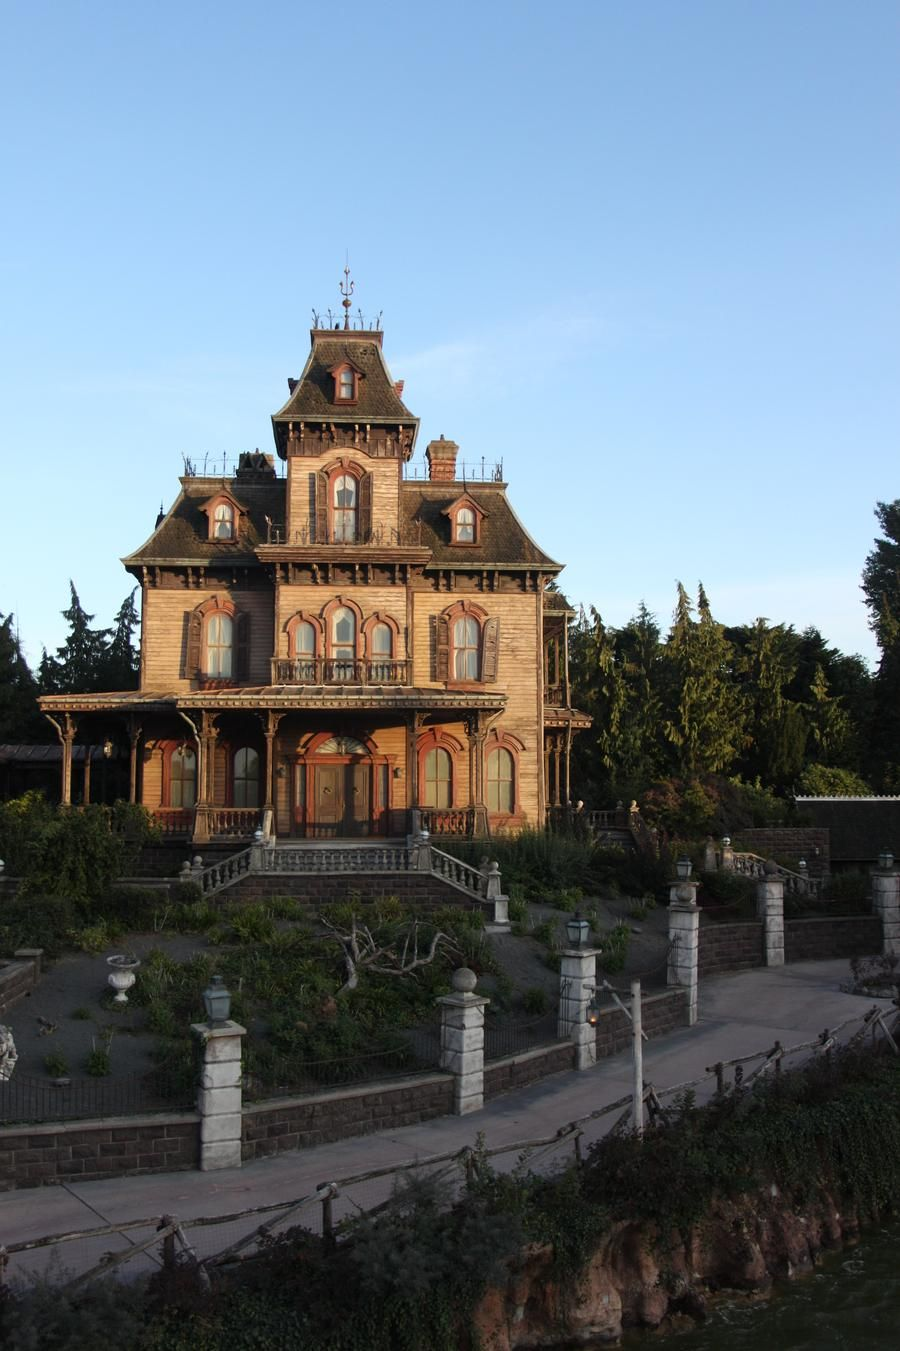 Haunted Mansion Disneyland by cianjg on DeviantArt